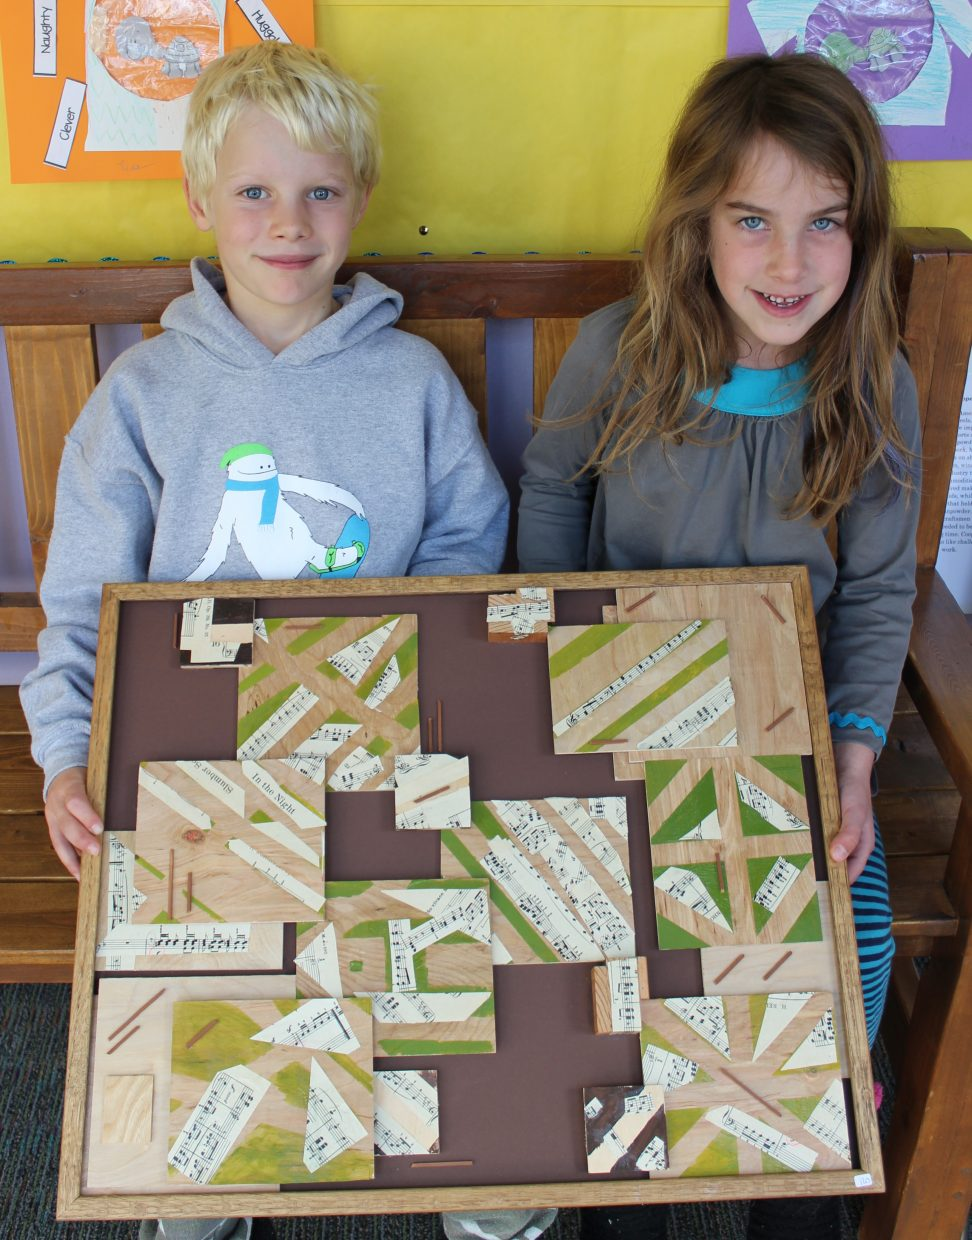 """Emerald Mountain School second graders Weston Worley and Caley Goforth hold the second grade art project """"Music to Our Ears,"""" which will be auctioned off Saturday as part of the school's annual fundraiser to provide scholarships to students."""